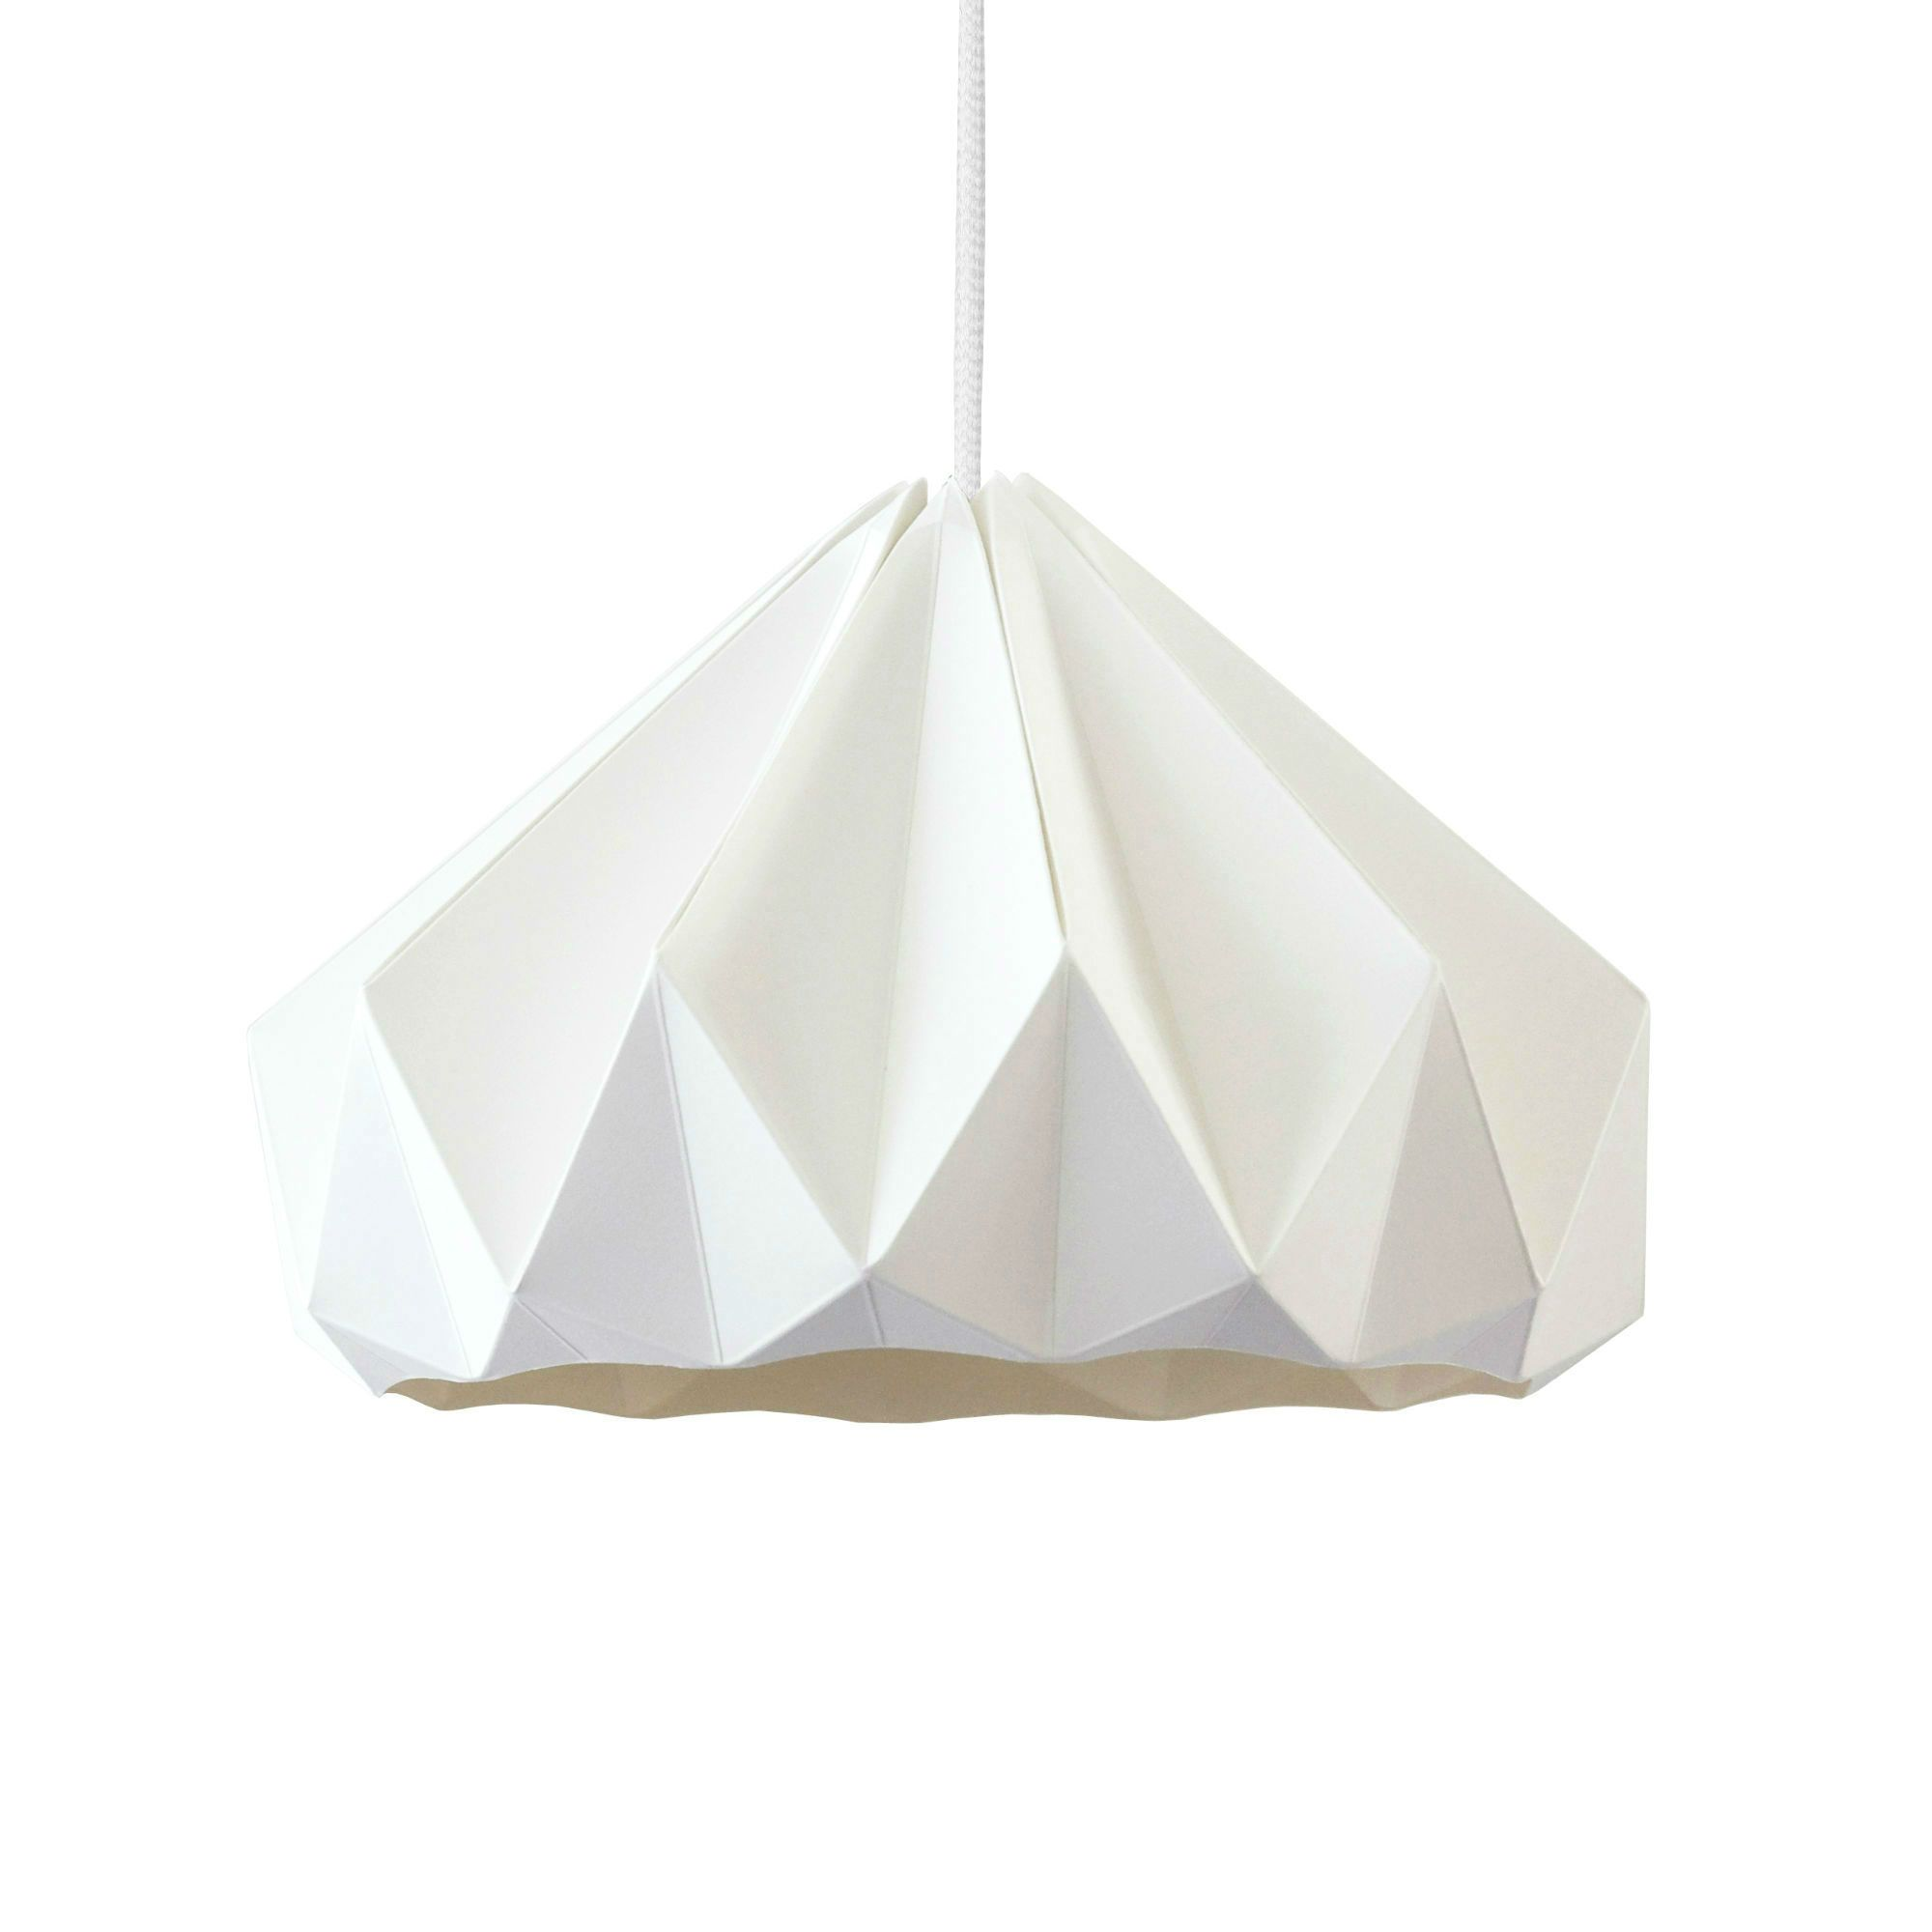 Suspension Papier Blanc ˜28cm CHESTNUT